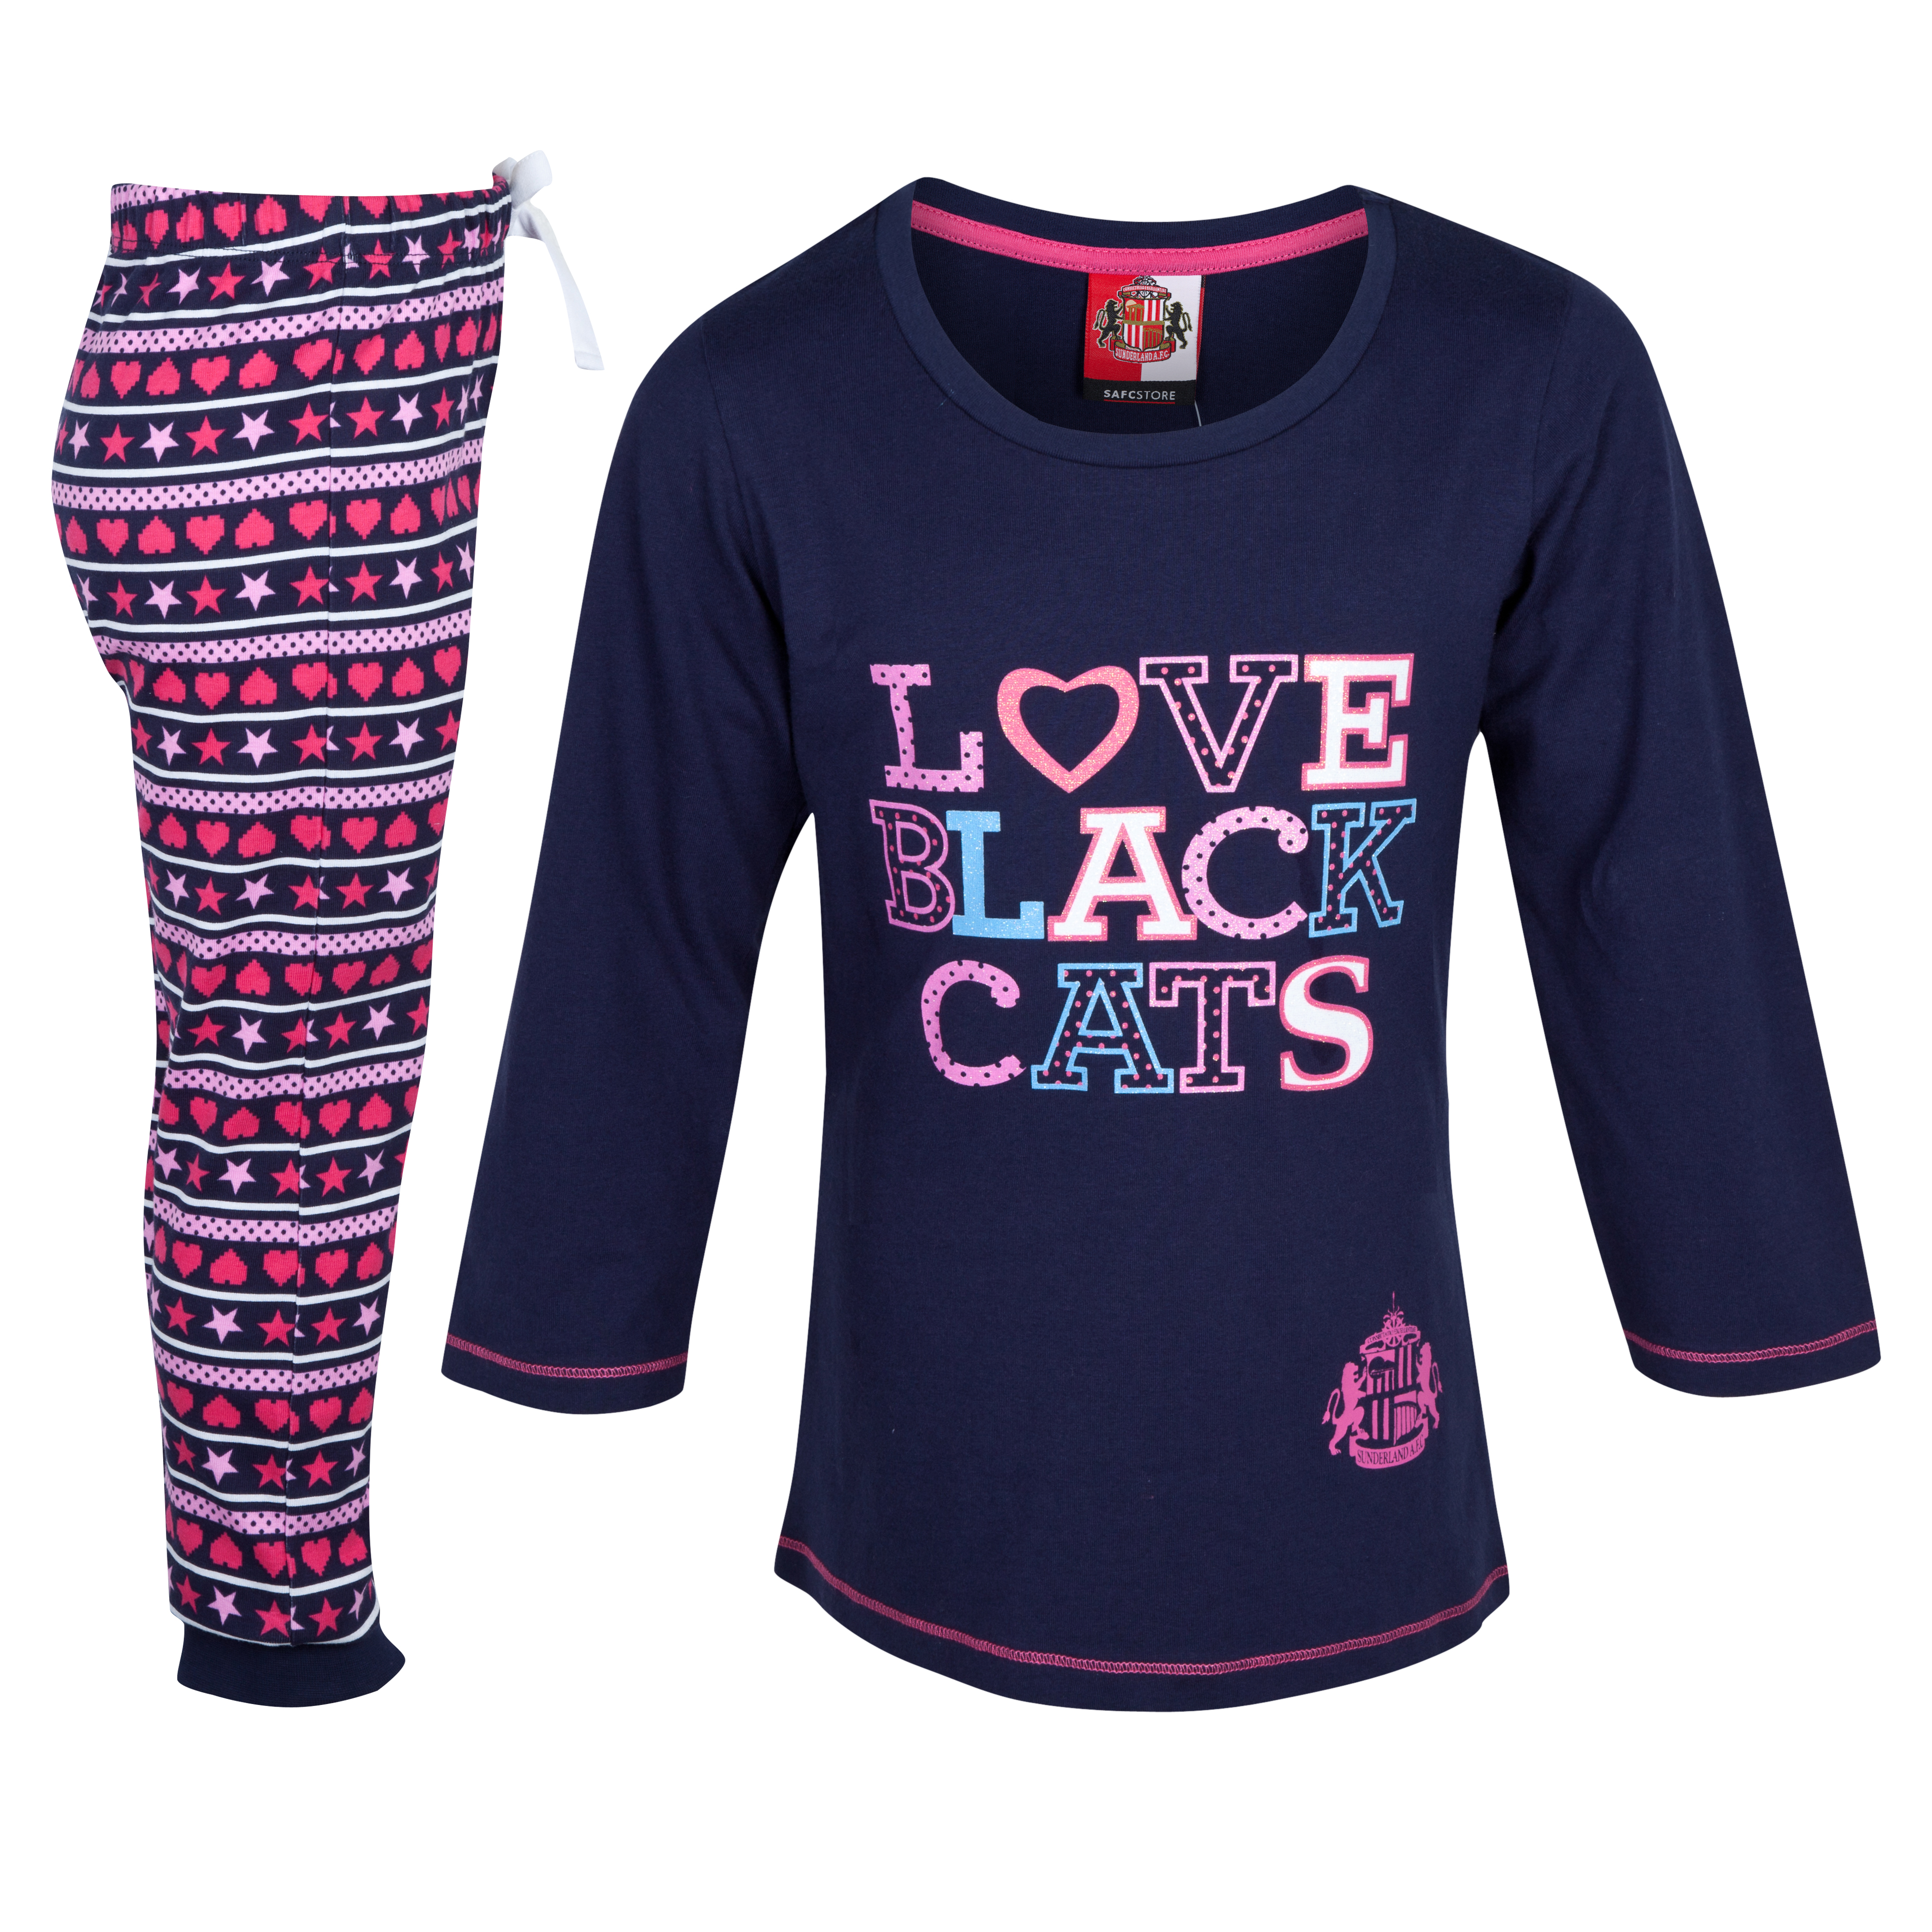 Sunderland Text Pyjama - Navy/Pink - Girls